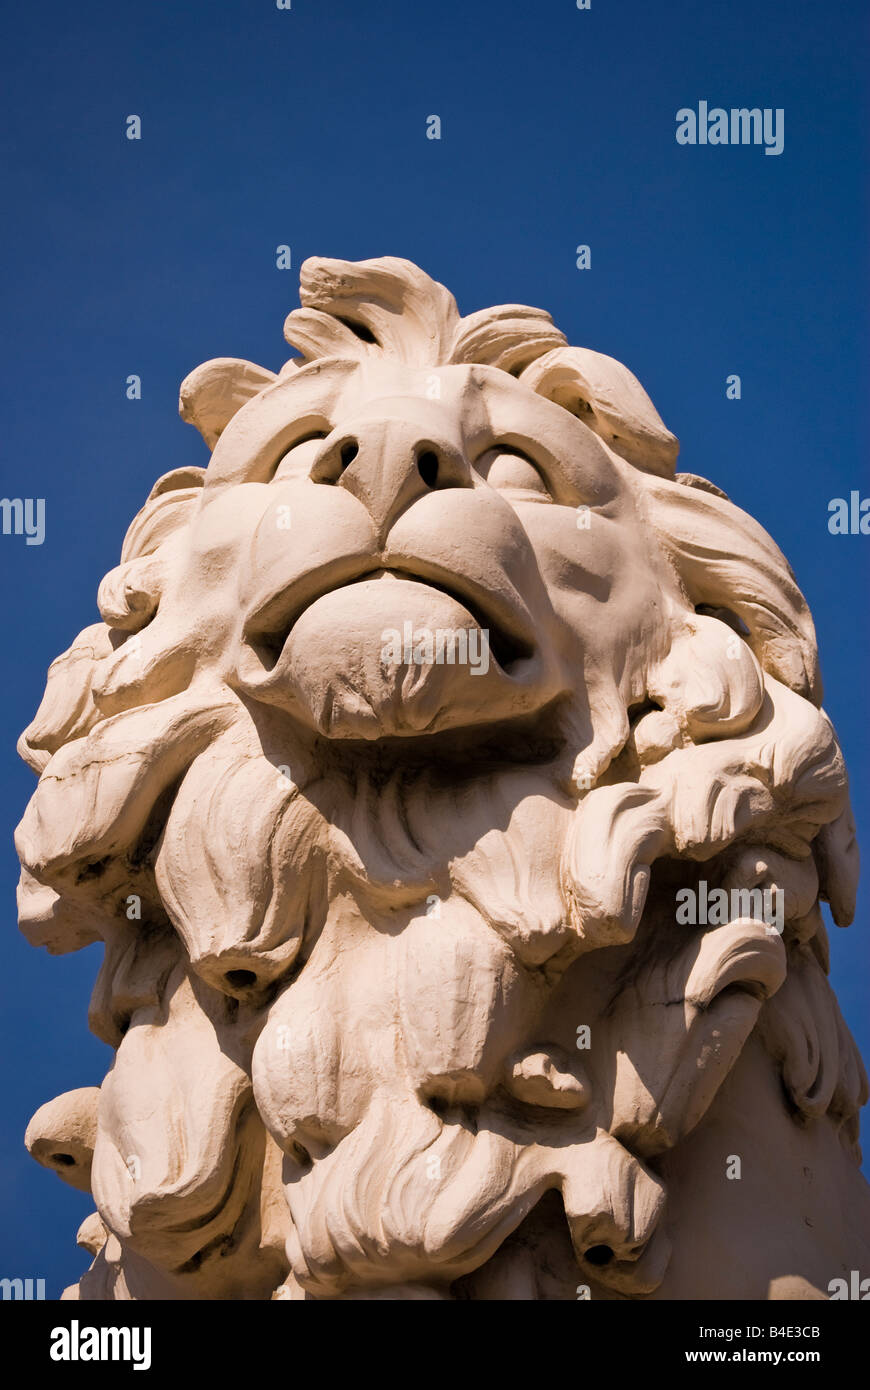 'Coade stone' lion sculpture, Westminster bridge, London, England, UK - Stock Image